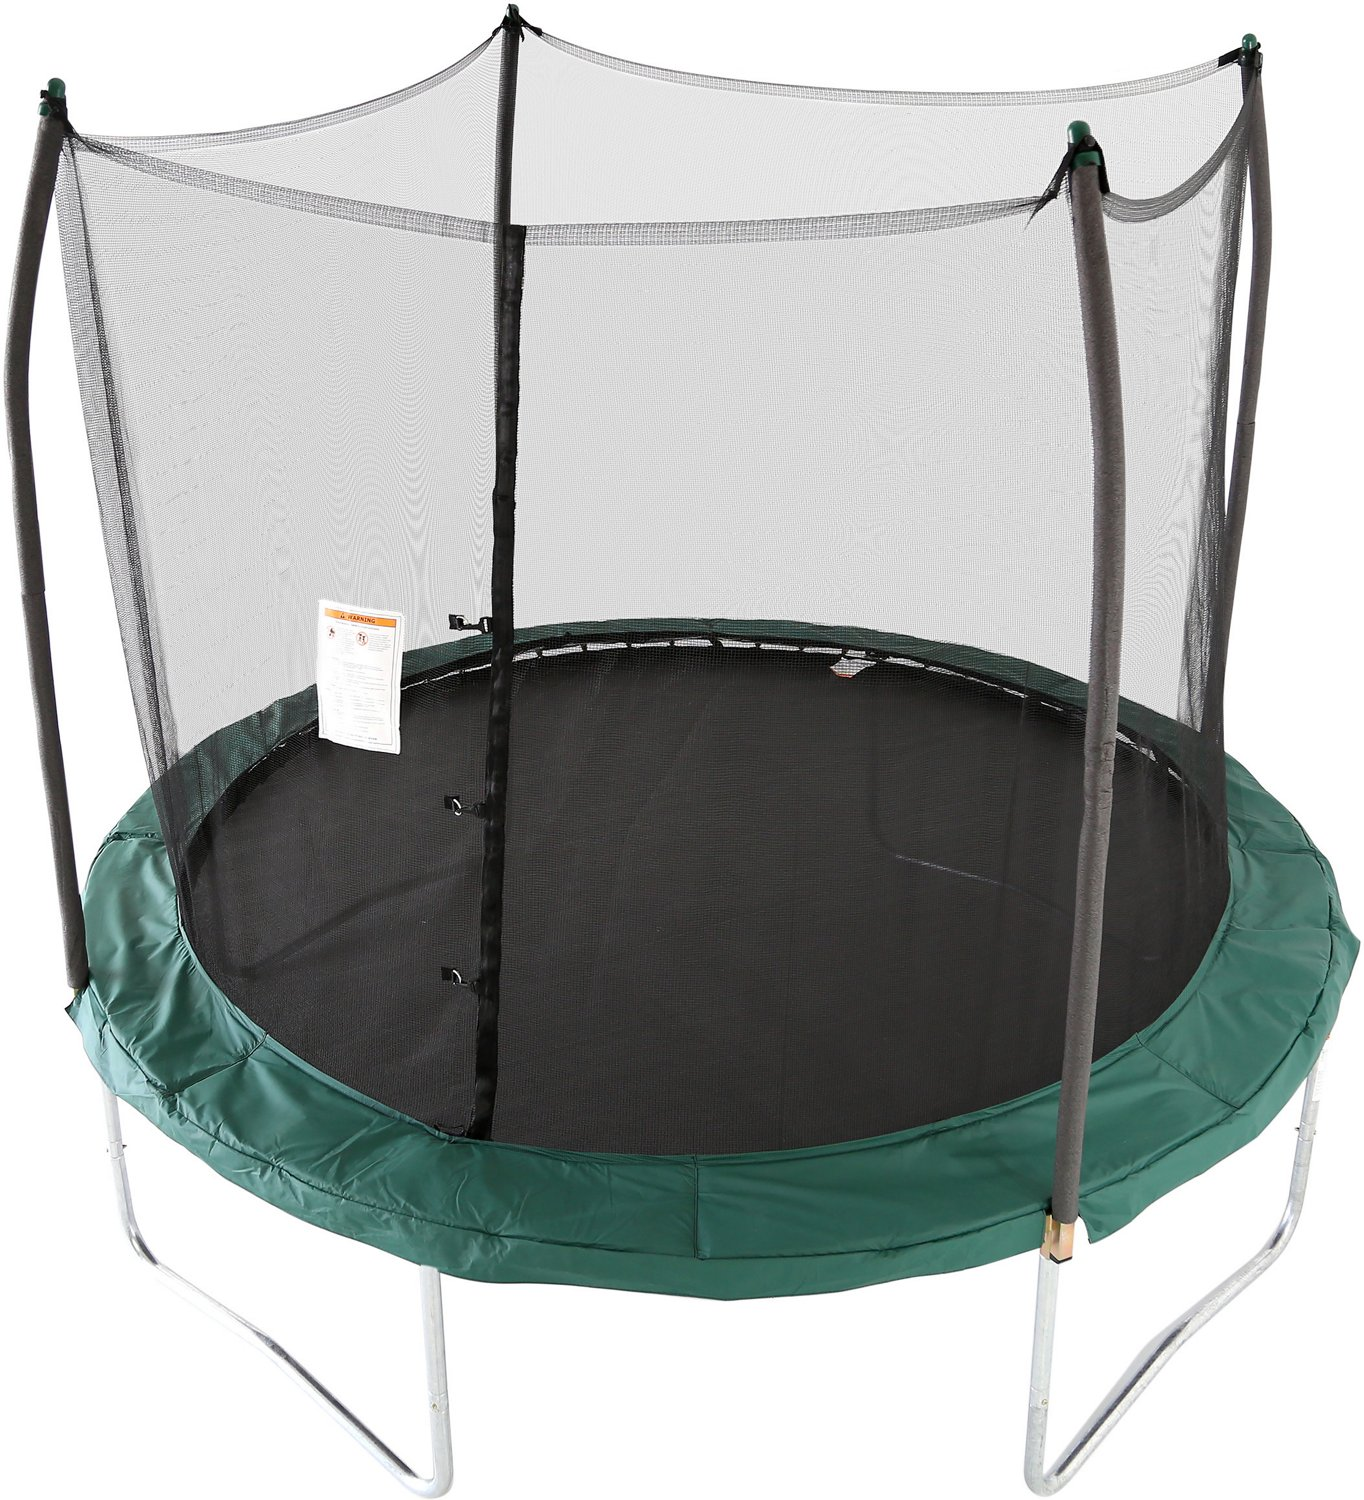 Ferty 10 12 14 15ft Trampoline Pad Waterproof Replacement: Enclosed Trampolines & More